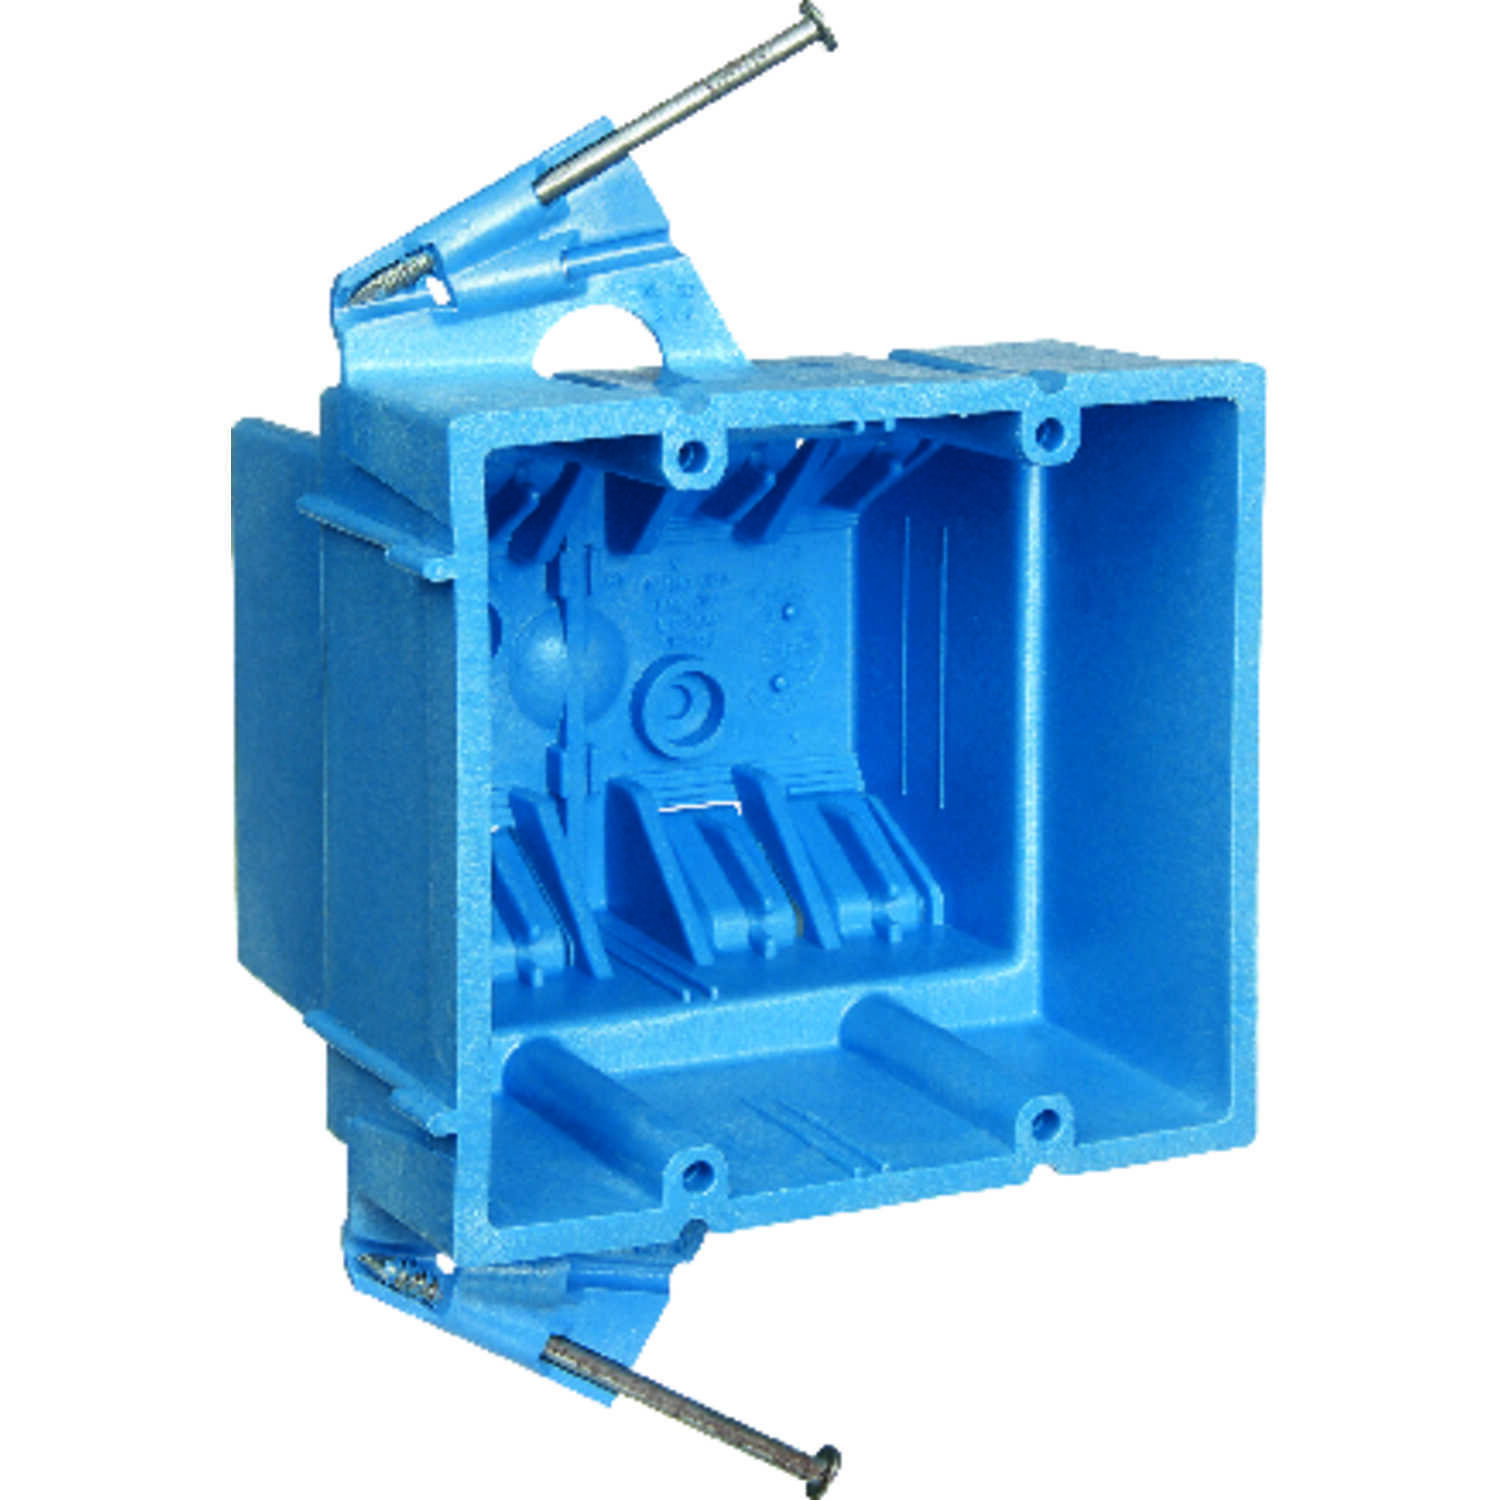 Carlon  Super Blue  3-7/8 in. Rectangle  Thermoplastic  2 gang Outlet Box  Blue